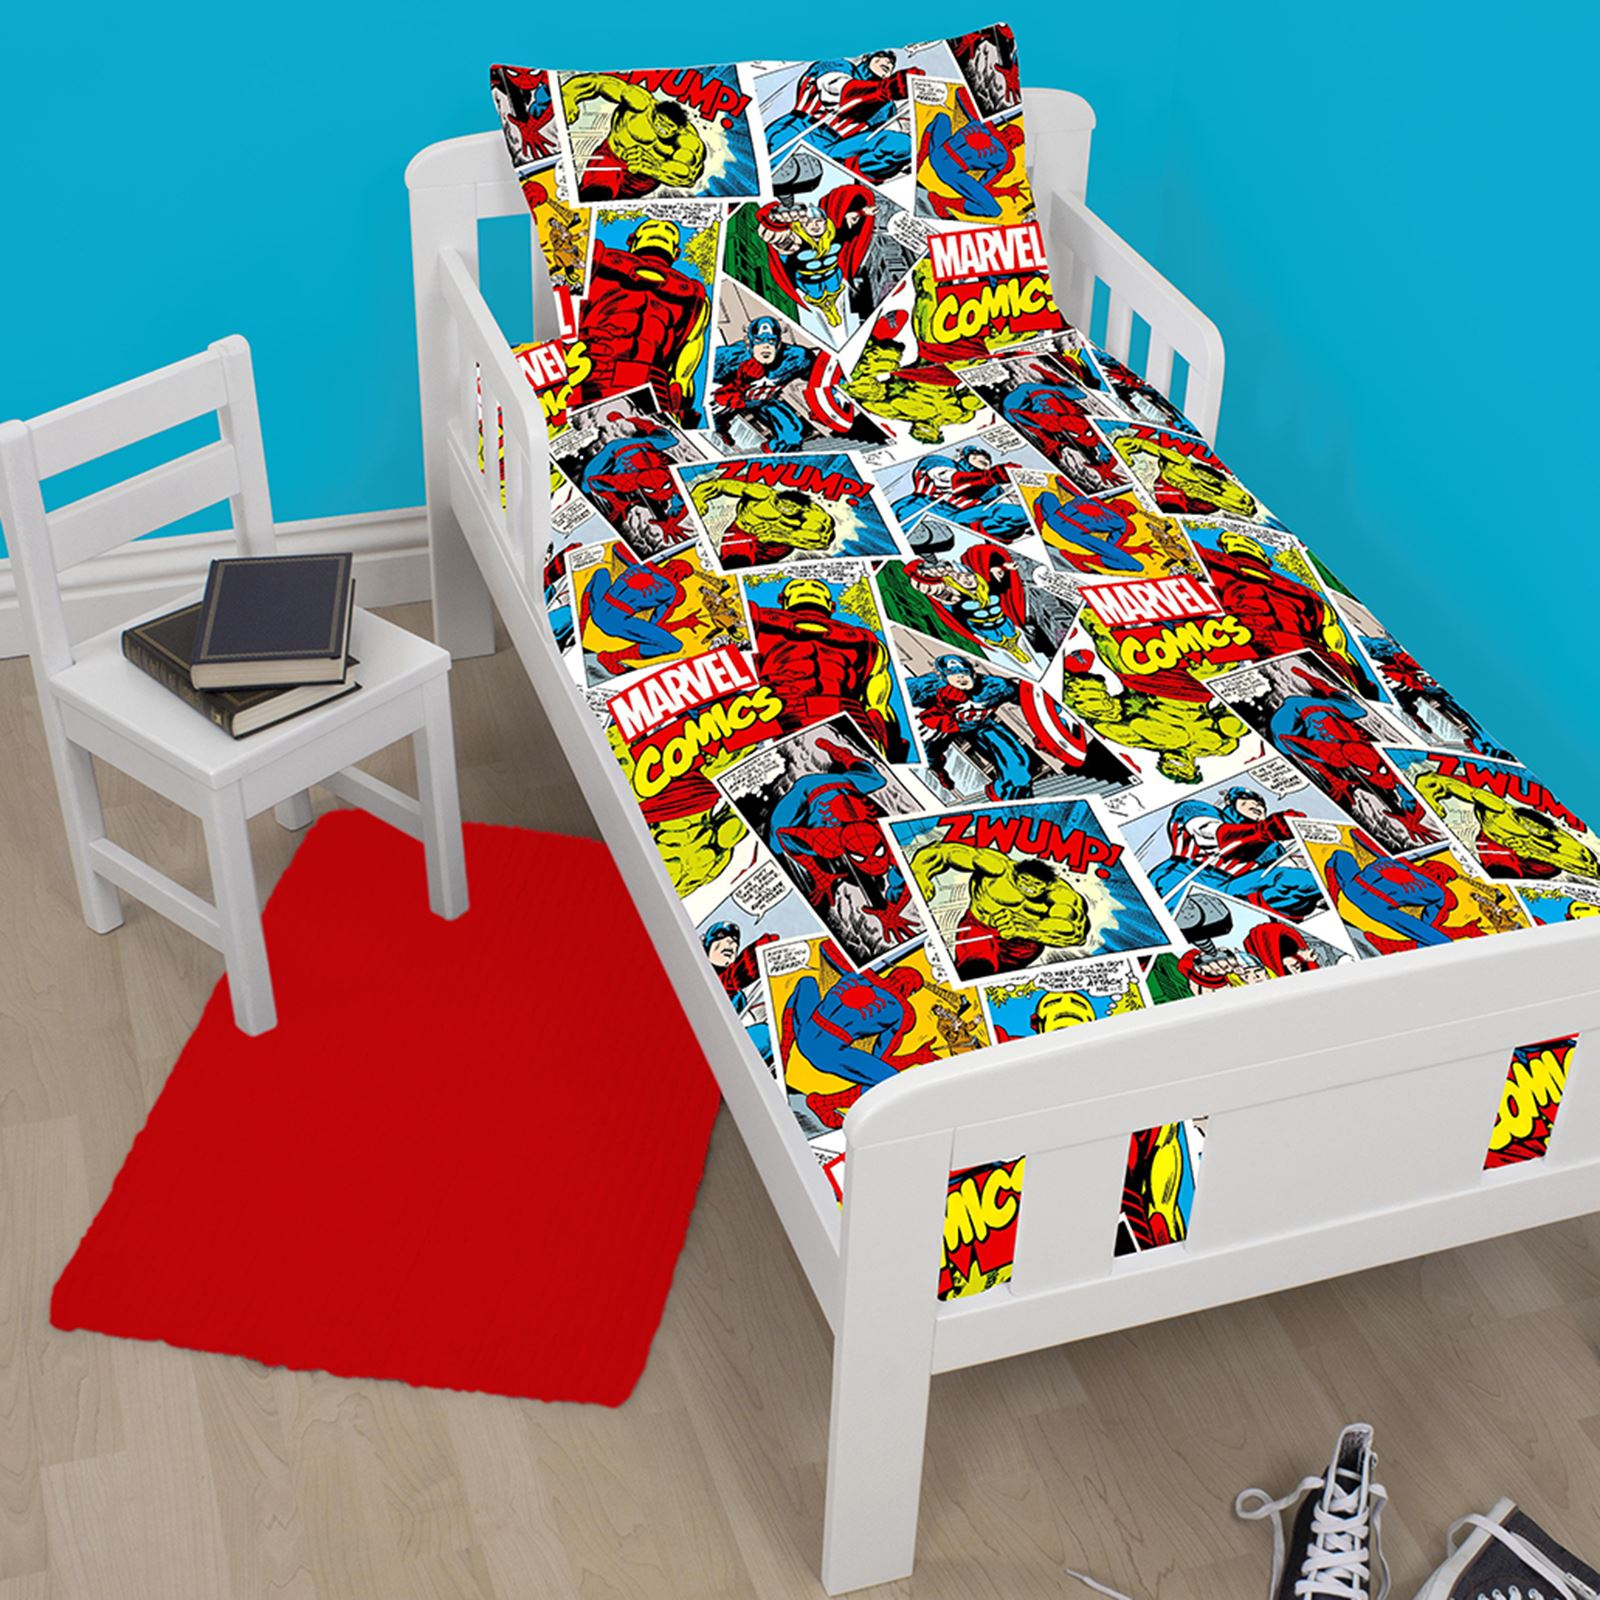 OFFICIAL AVENGERS MARVEL ICS BEDDING BEDROOM ACCESSORIES